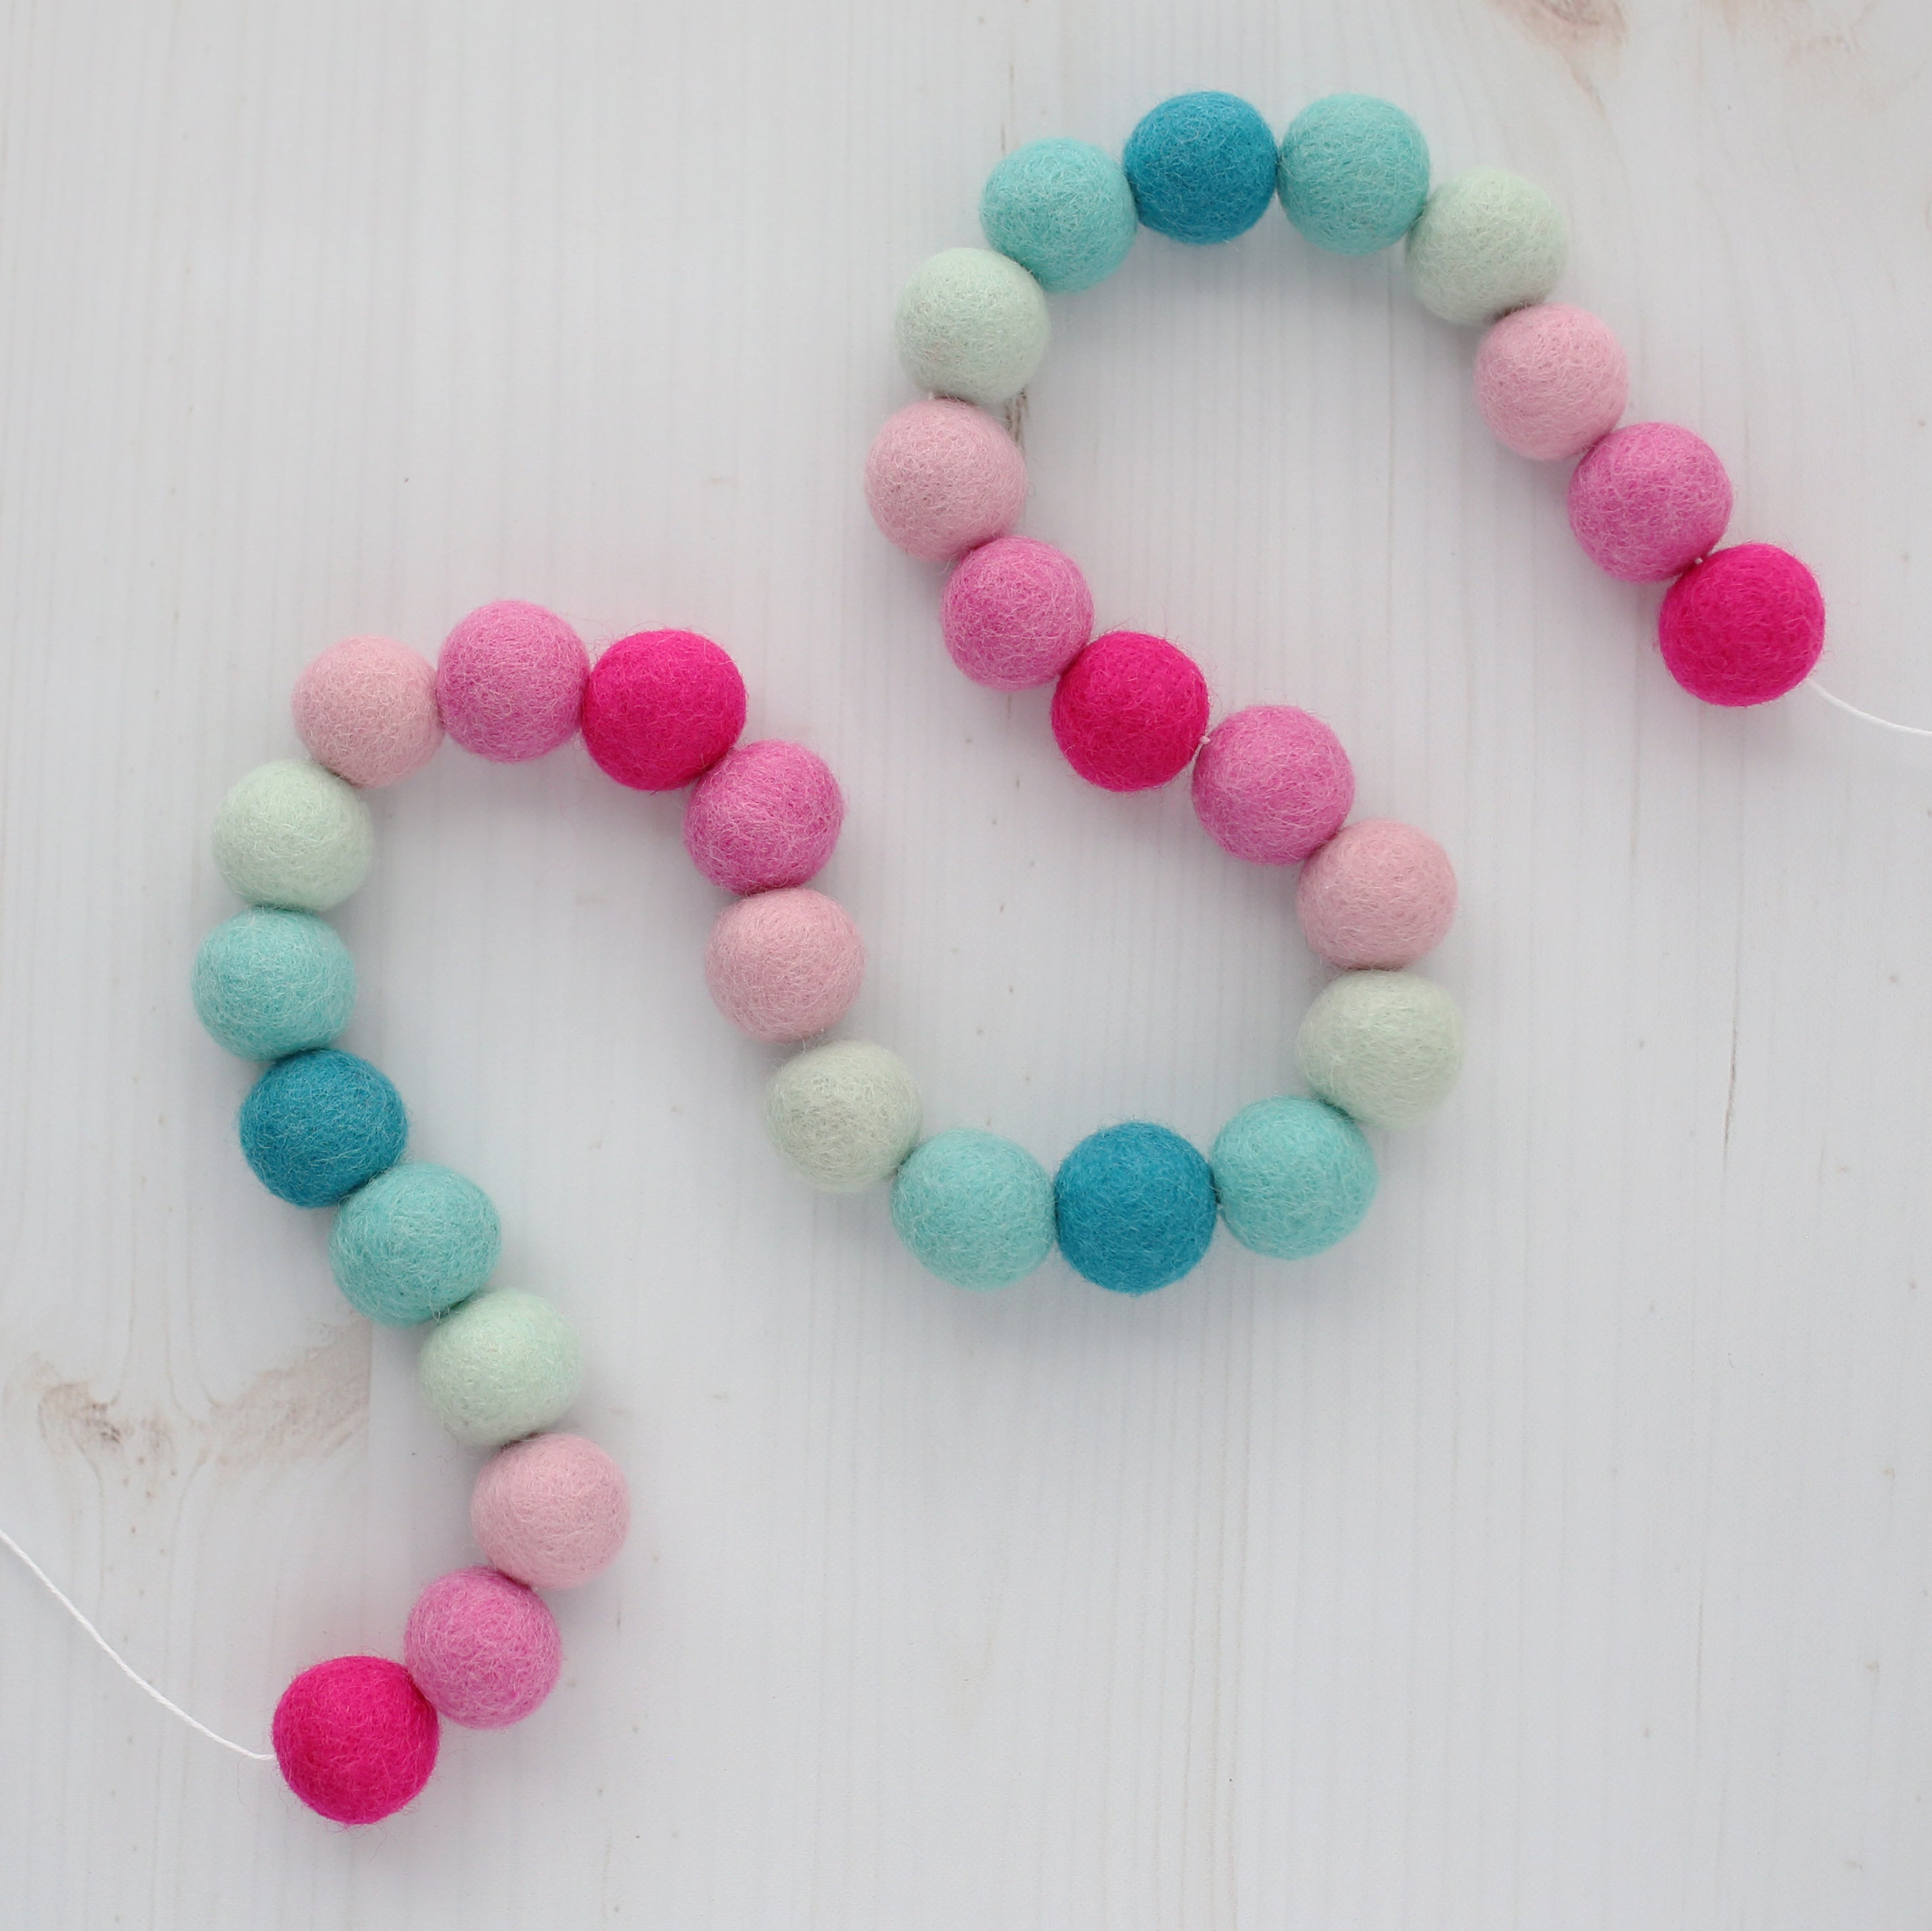 Aqua and pink valentine's felt ball garland on a white wood table